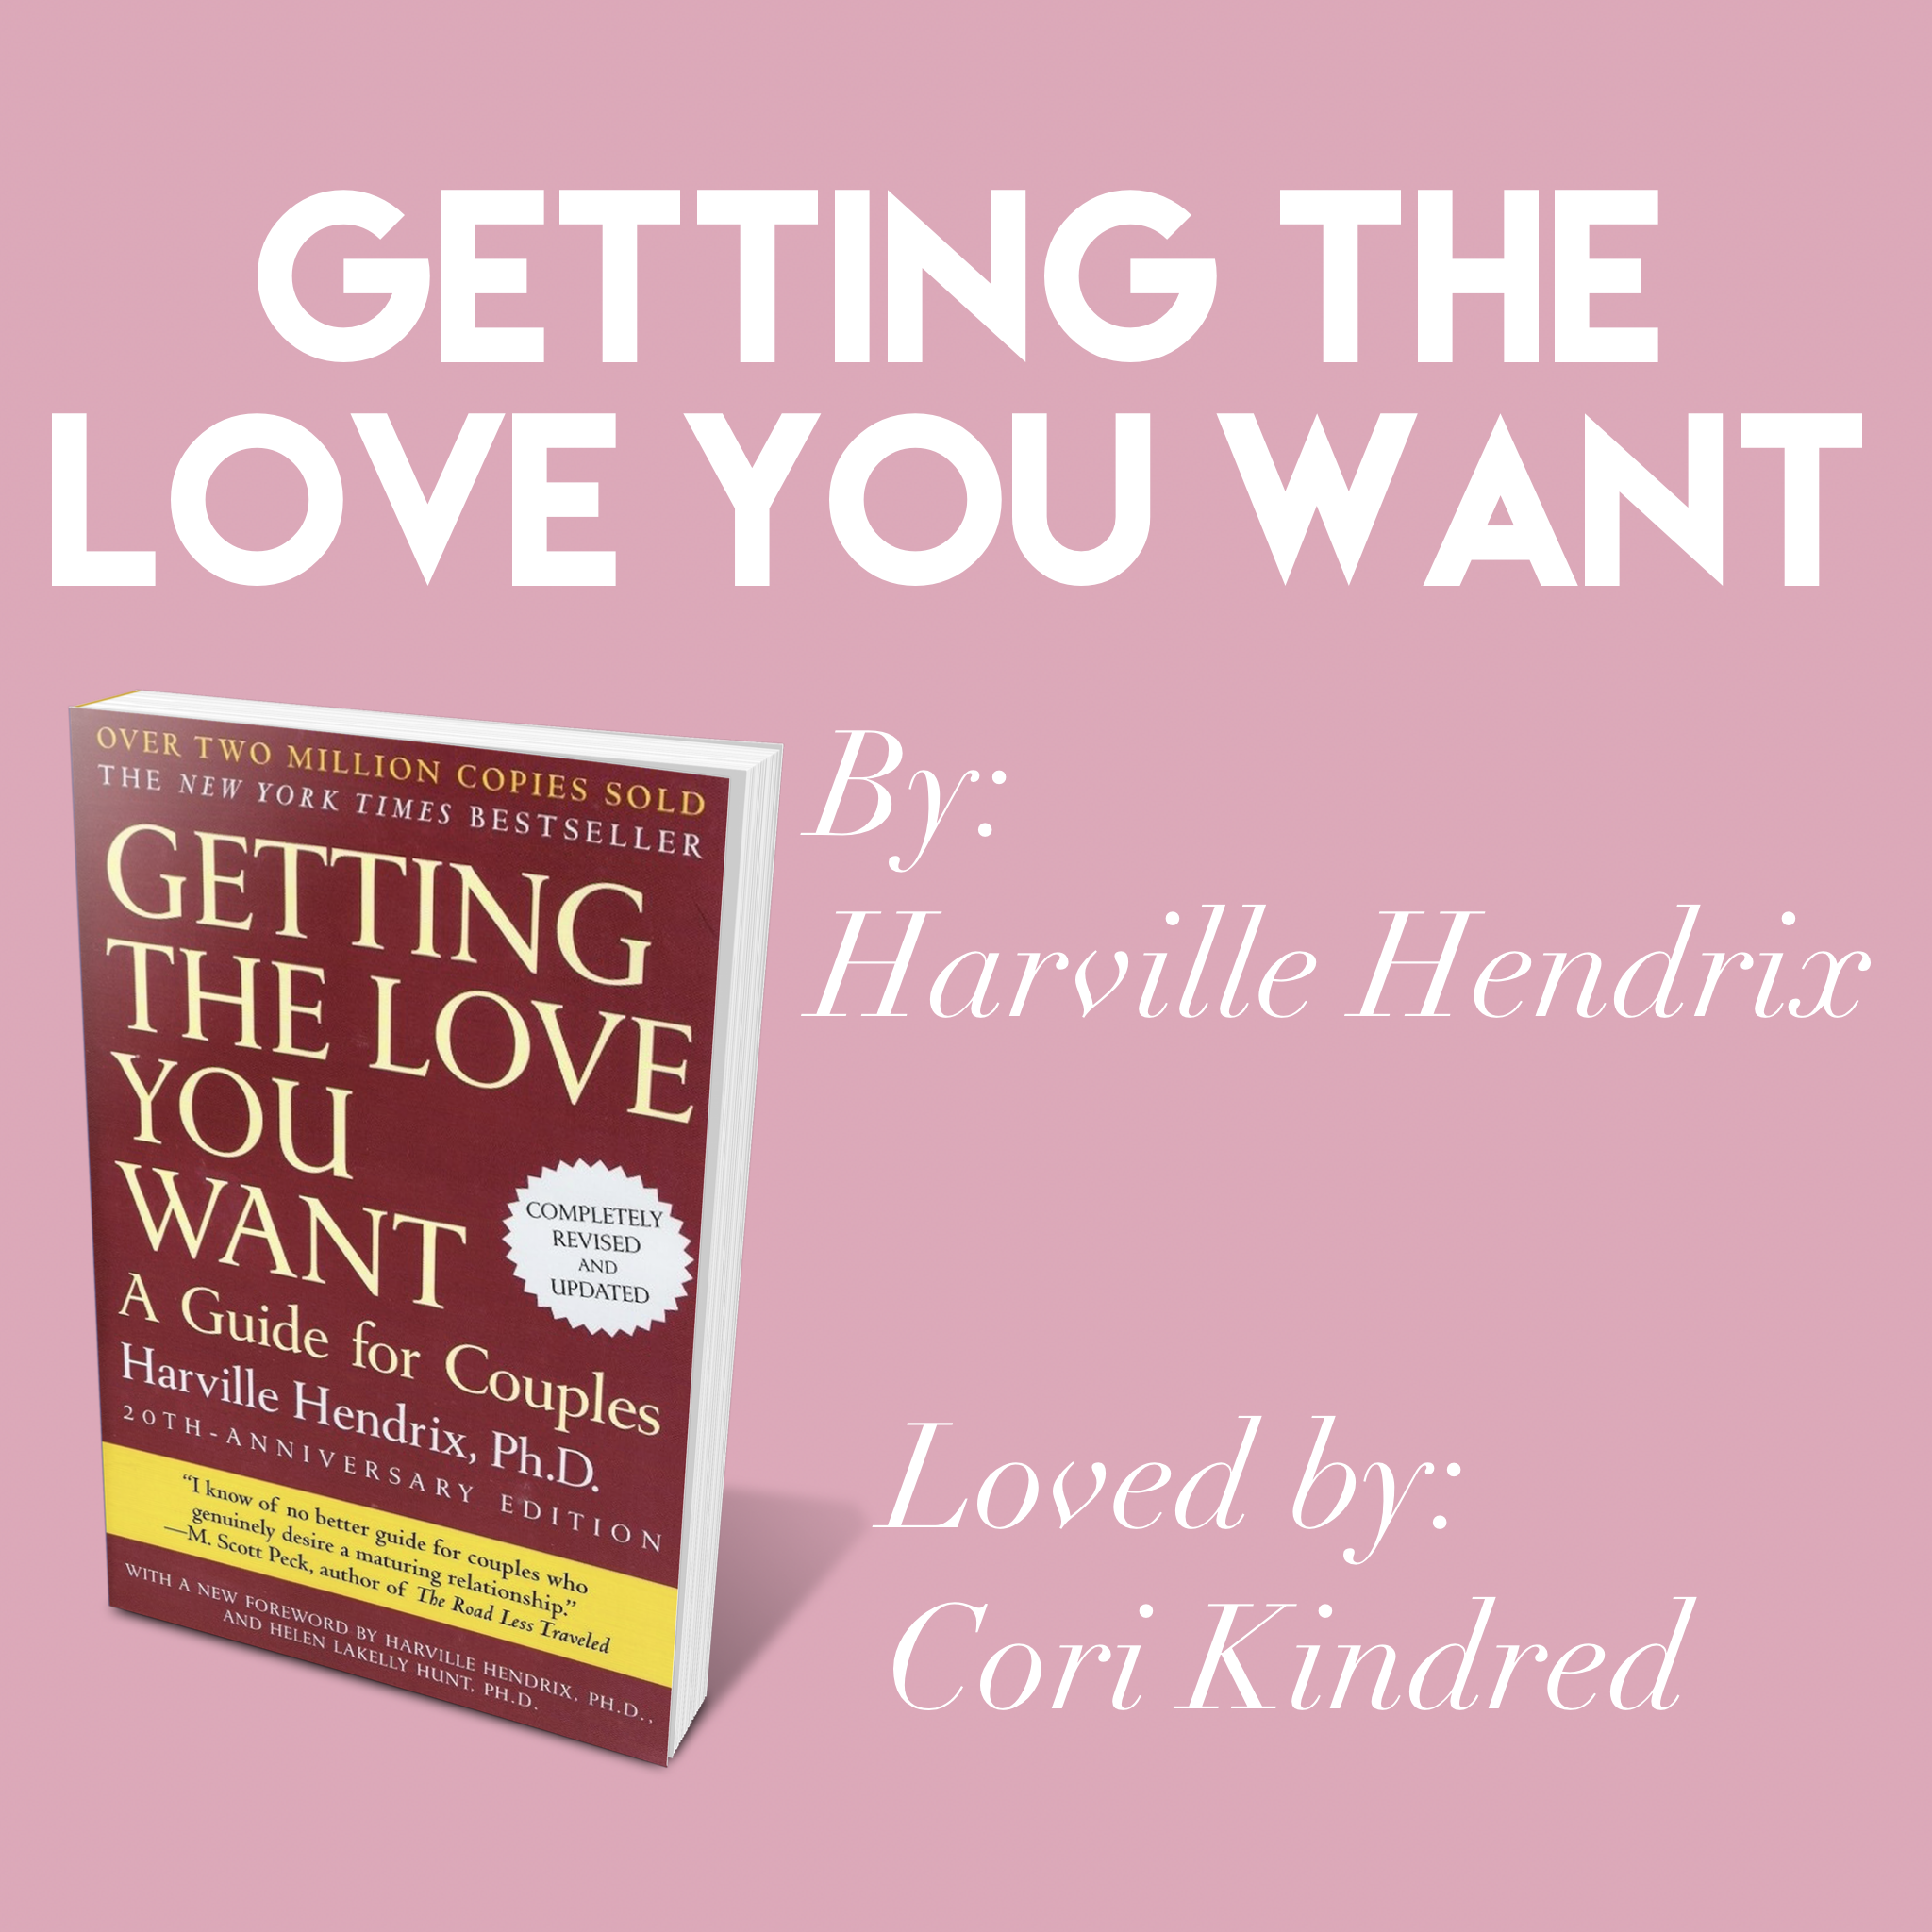 'Getting the Love You Want' by Harville Hendrix // Loved by Cori Kindred